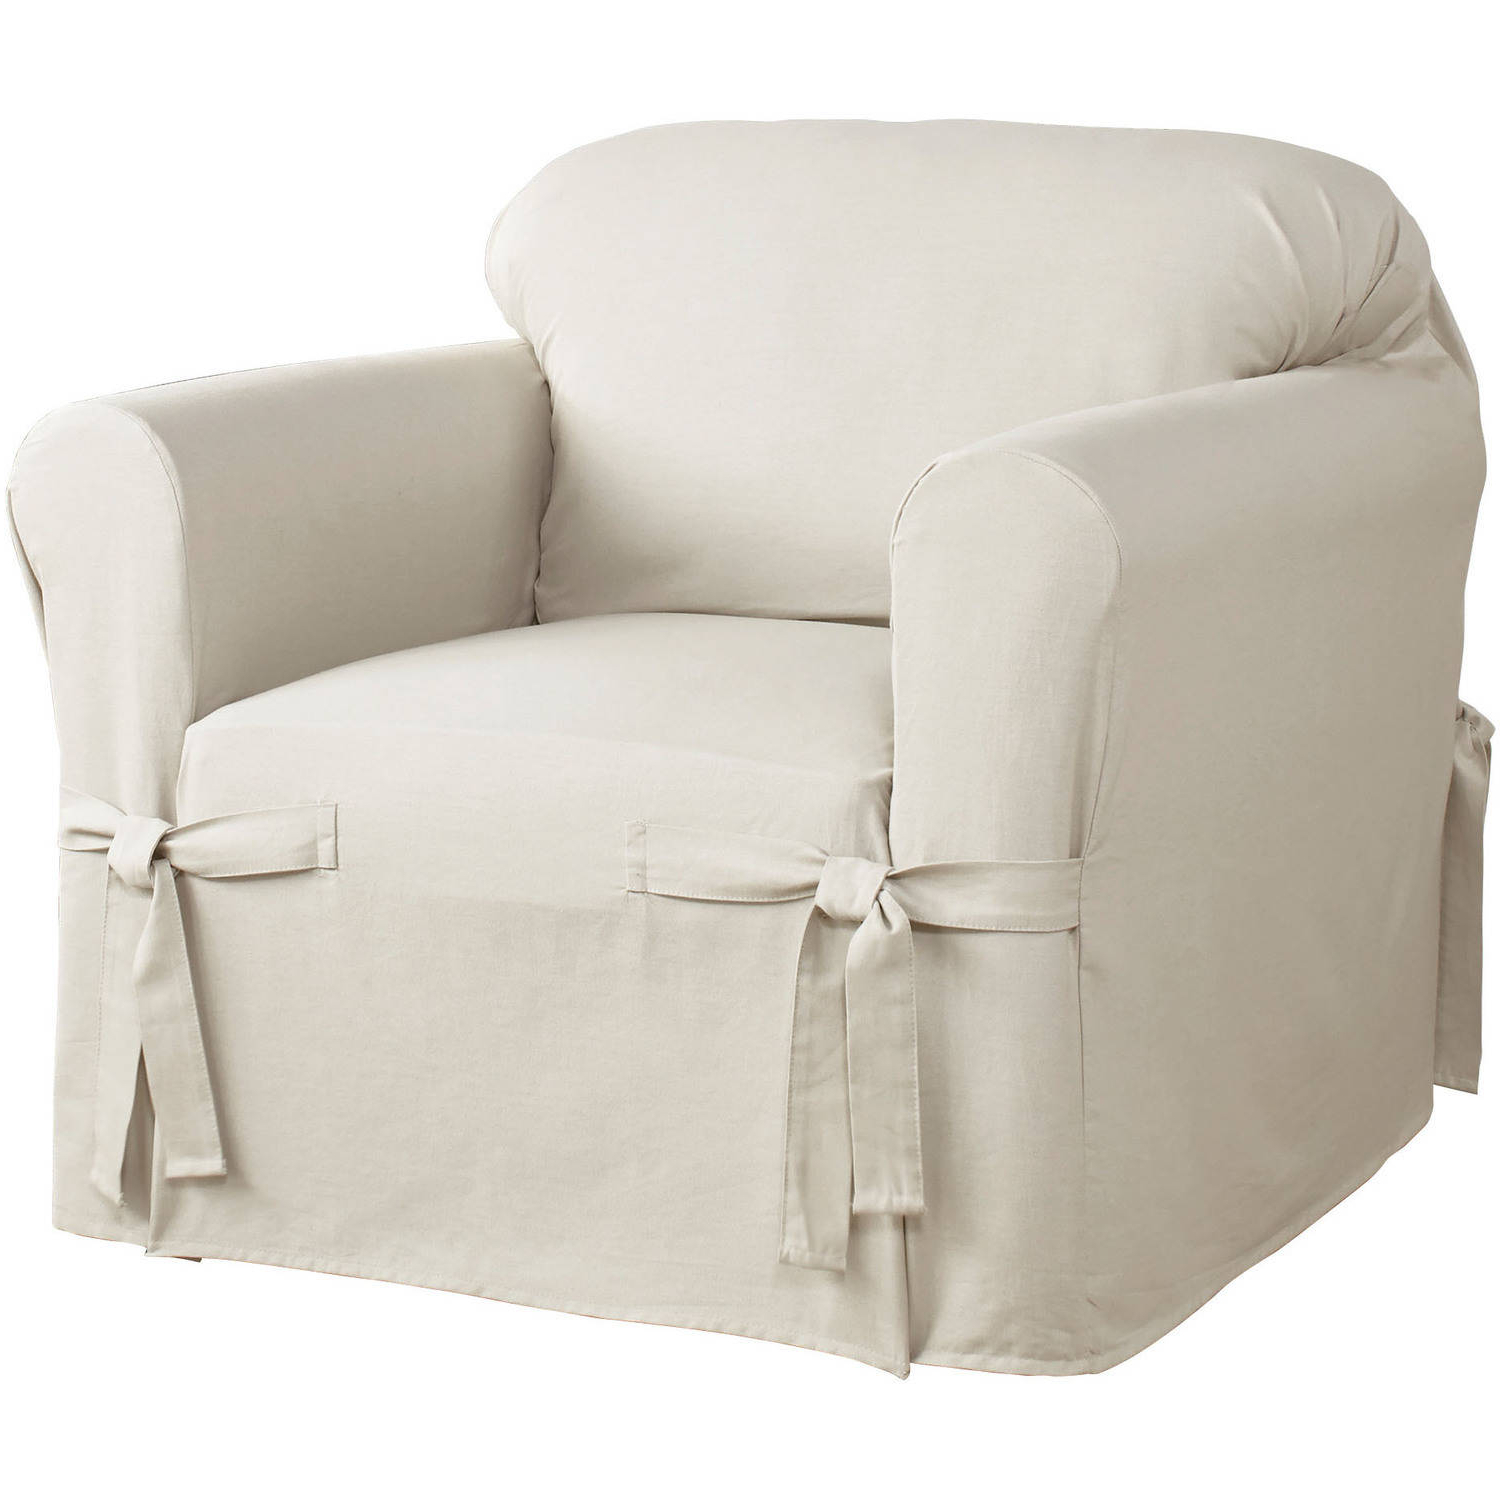 Well Liked Serta Relaxed Fit Cotton Duck Furniture Slipcover, Chair 1 Piece Box Throughout Slipcovers For Chairs And Sofas (View 19 of 20)